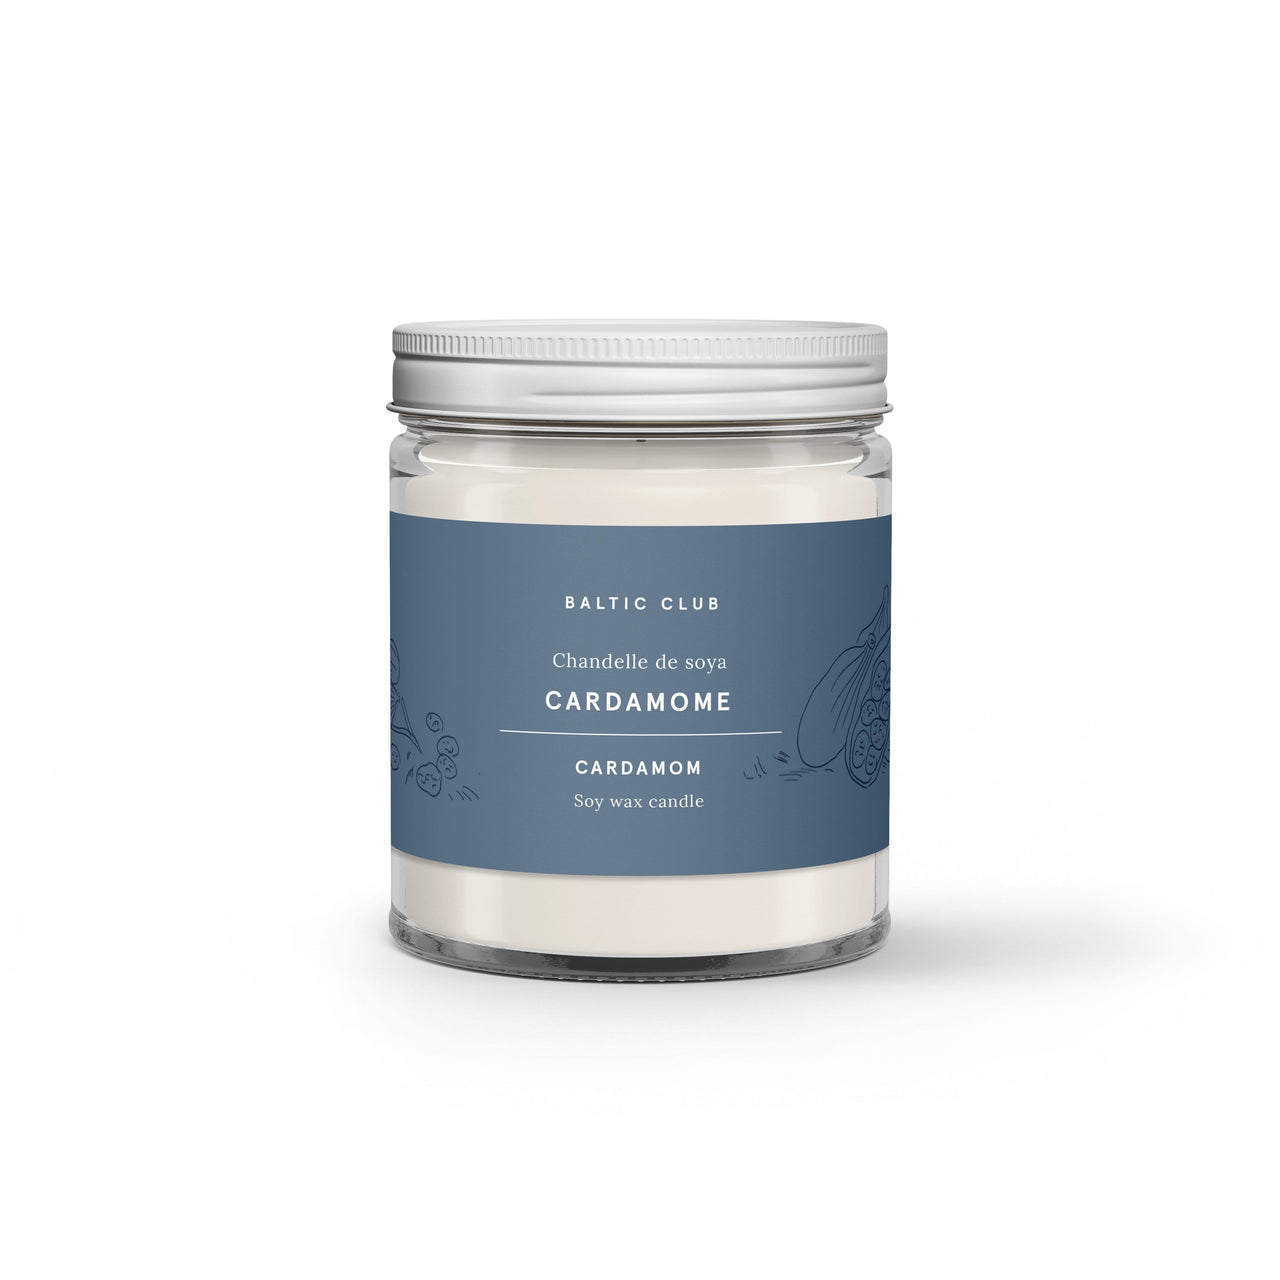 Baltic Club Candles Cardamom Candle